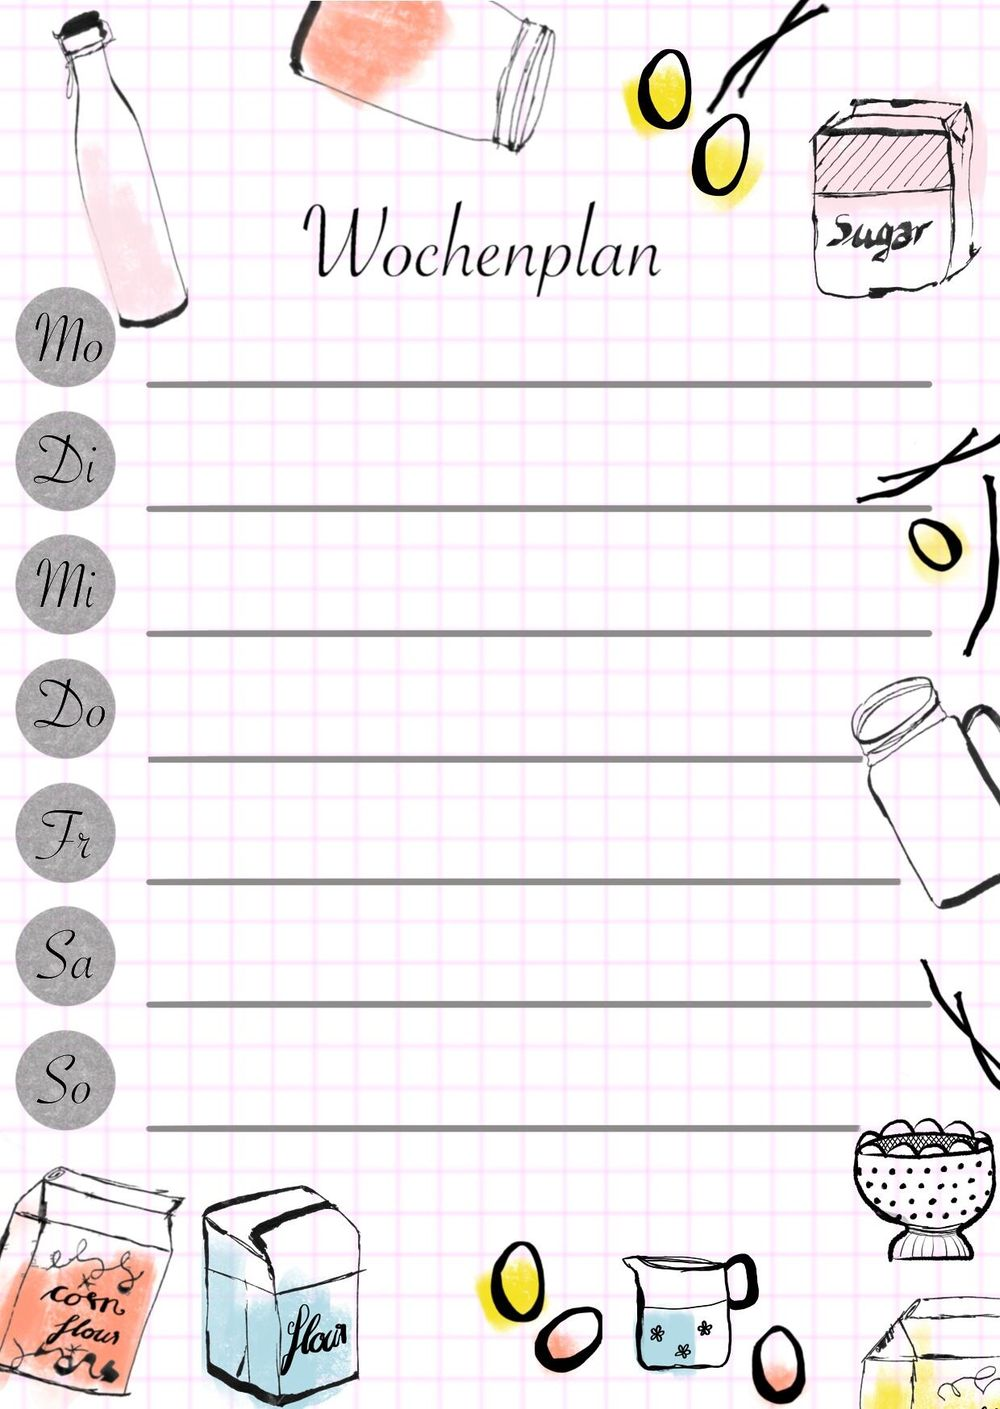 School trip cooking planner - image 2 - student project